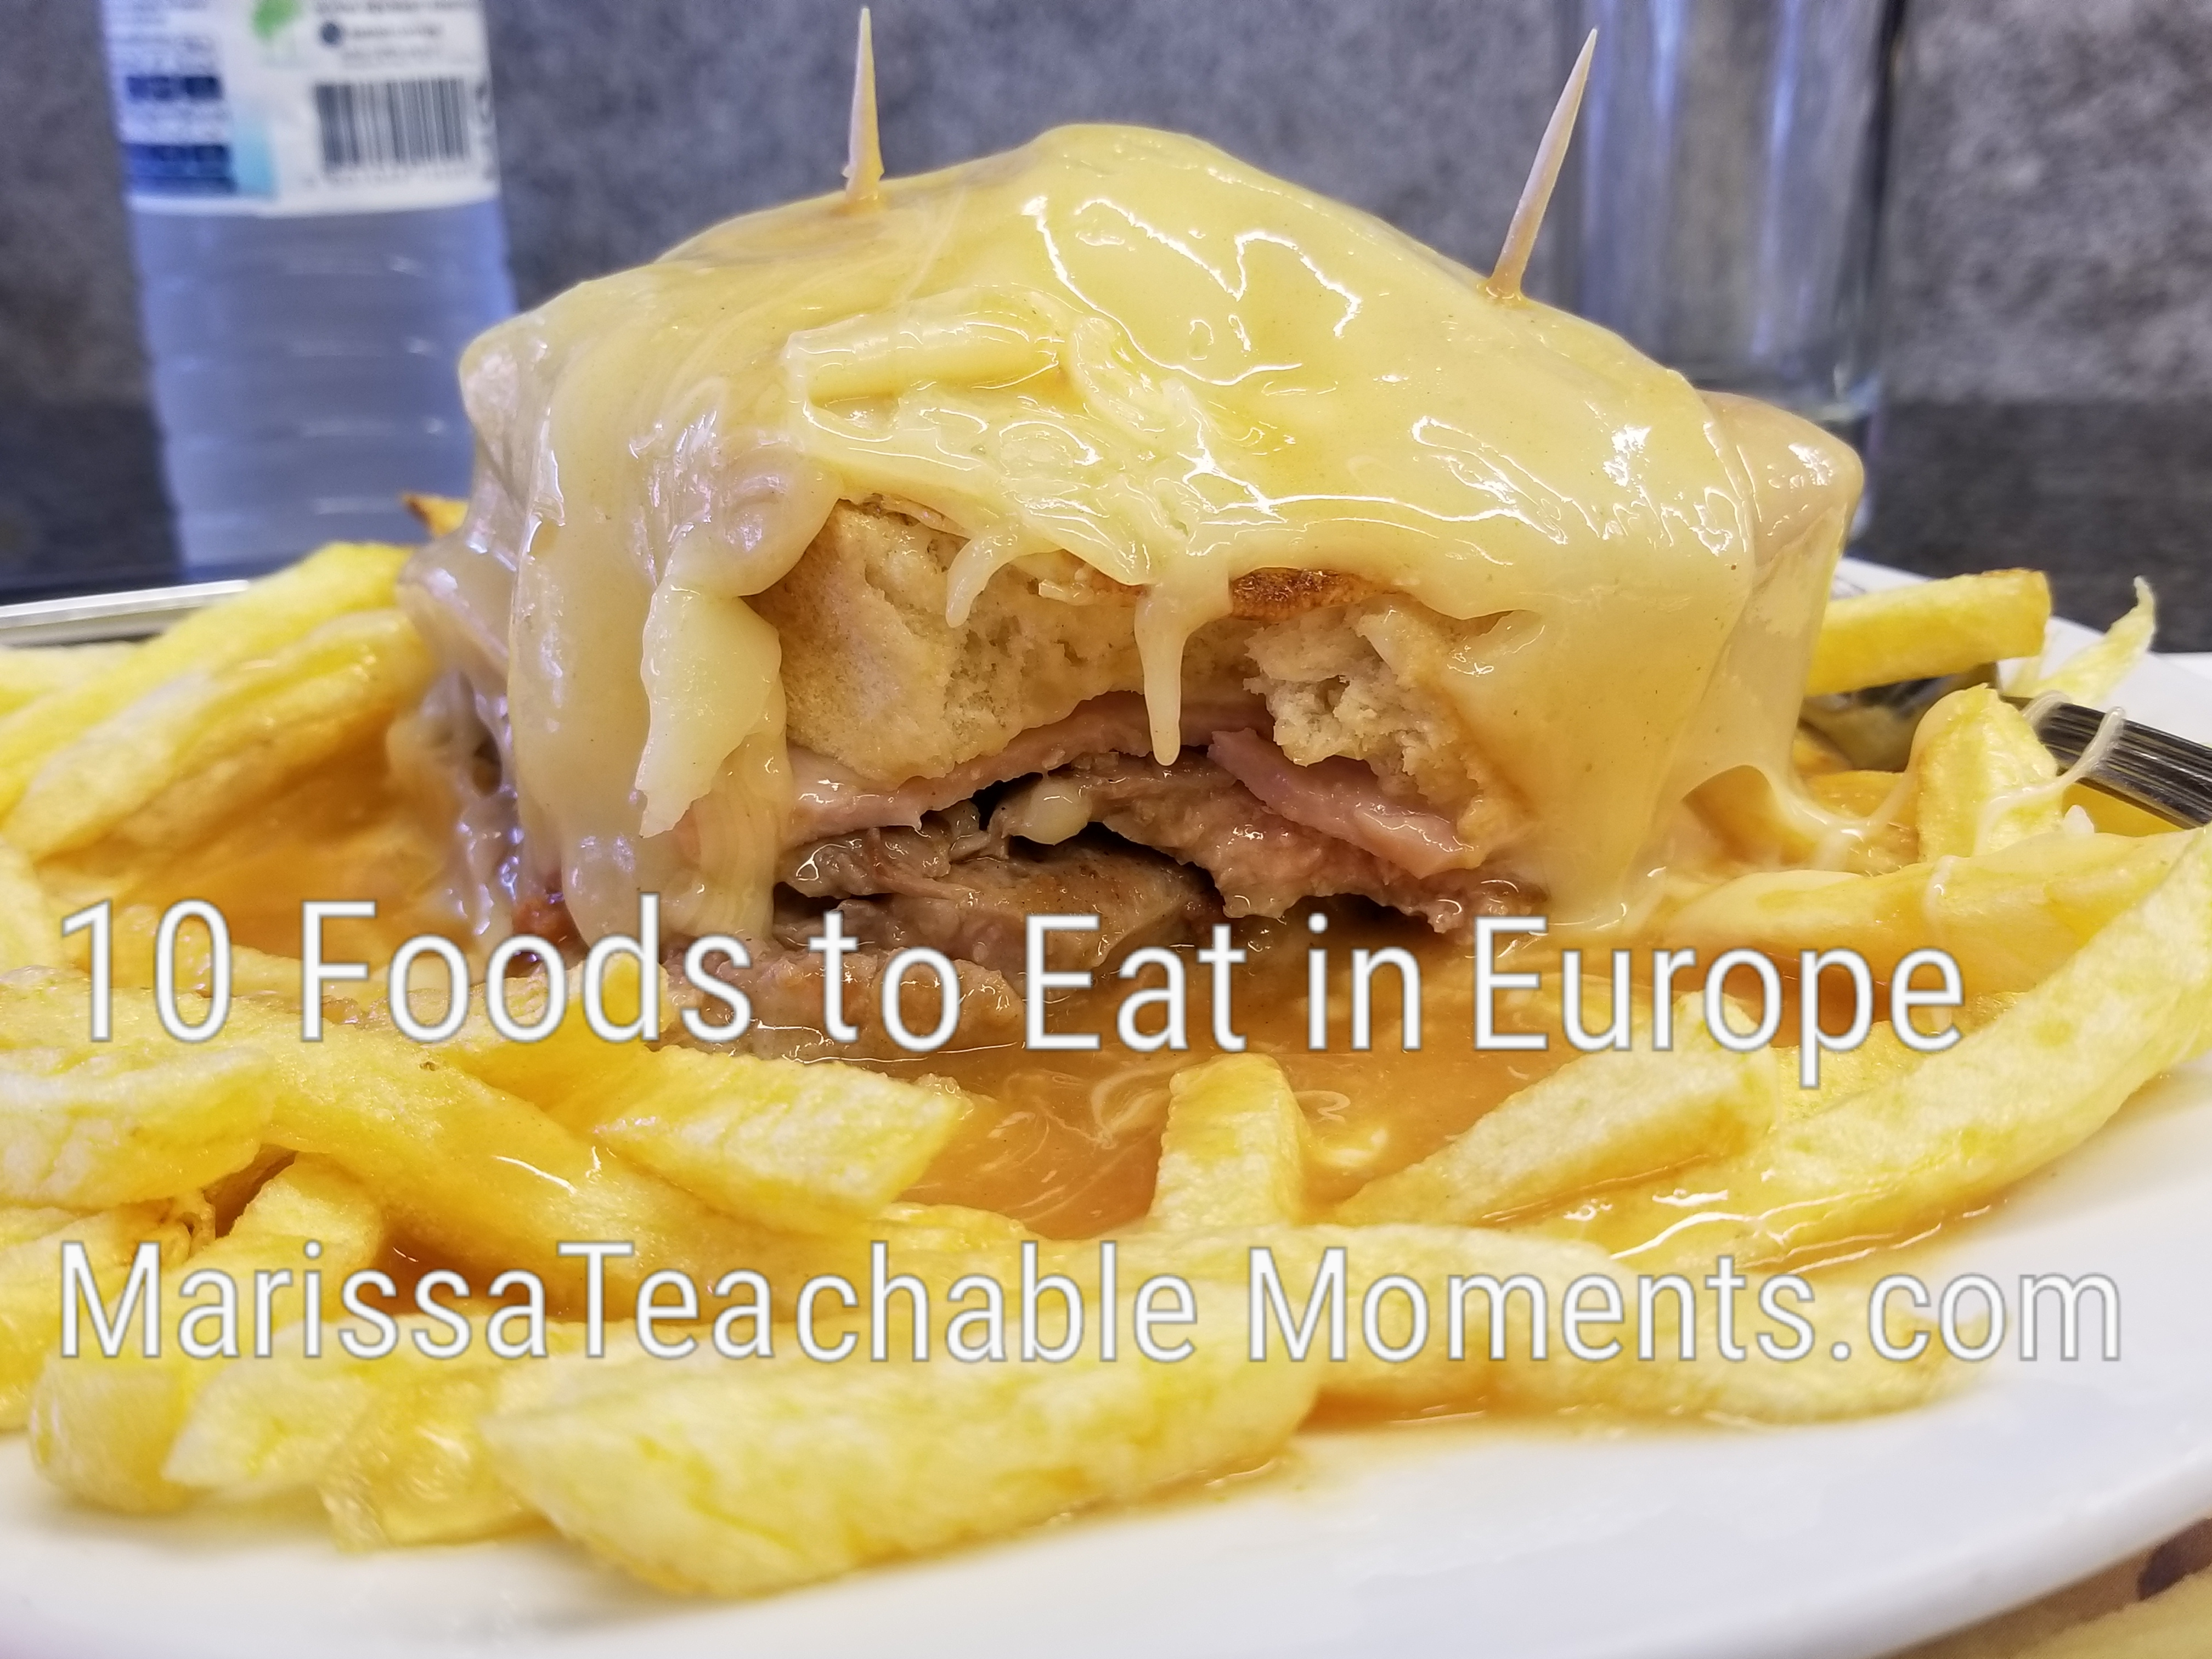 10 Foods to Eat in Europe